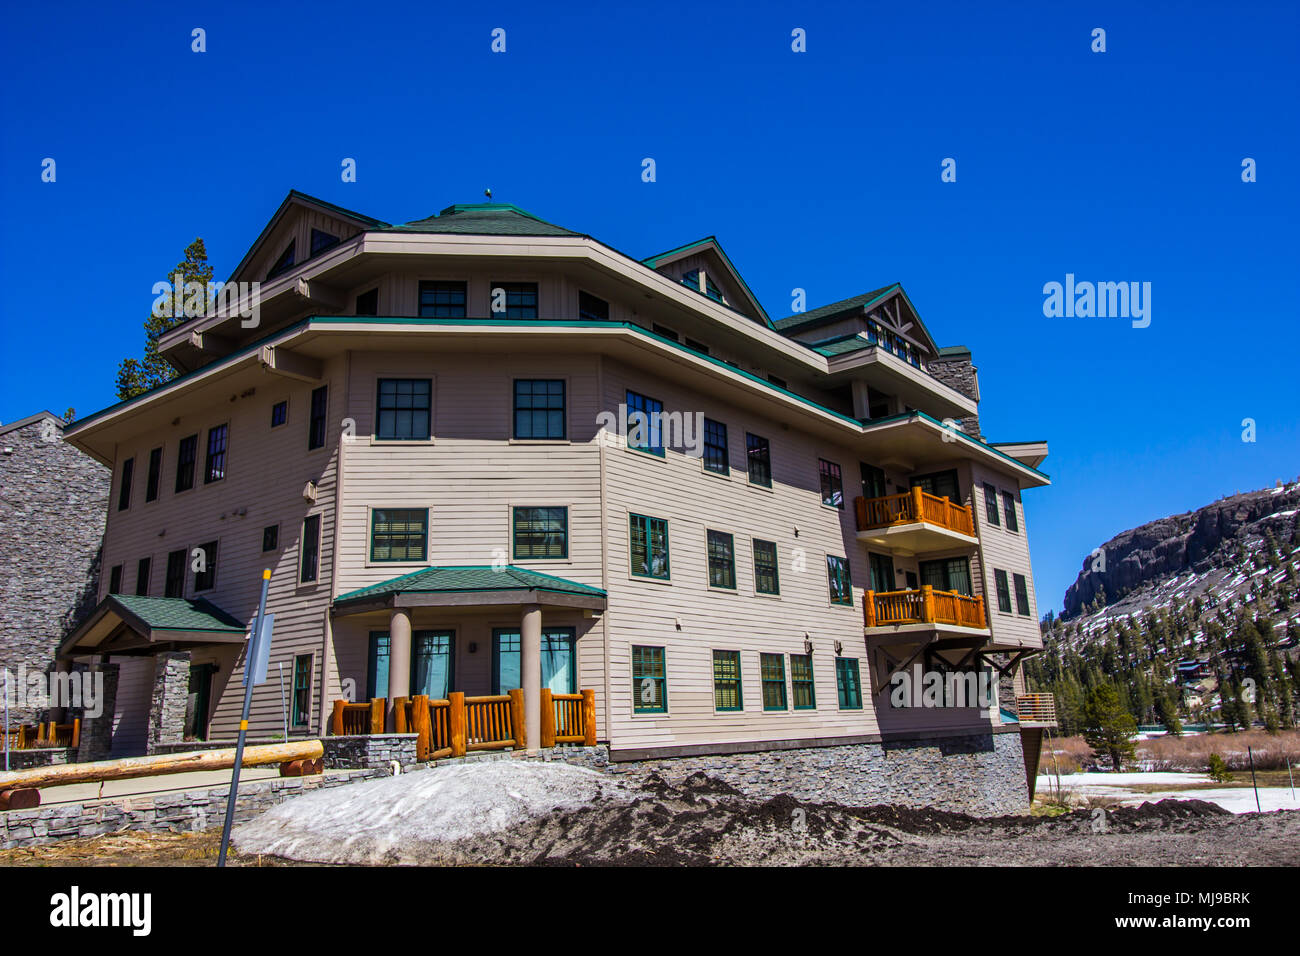 Multi Story Building In Mountains - Stock Image